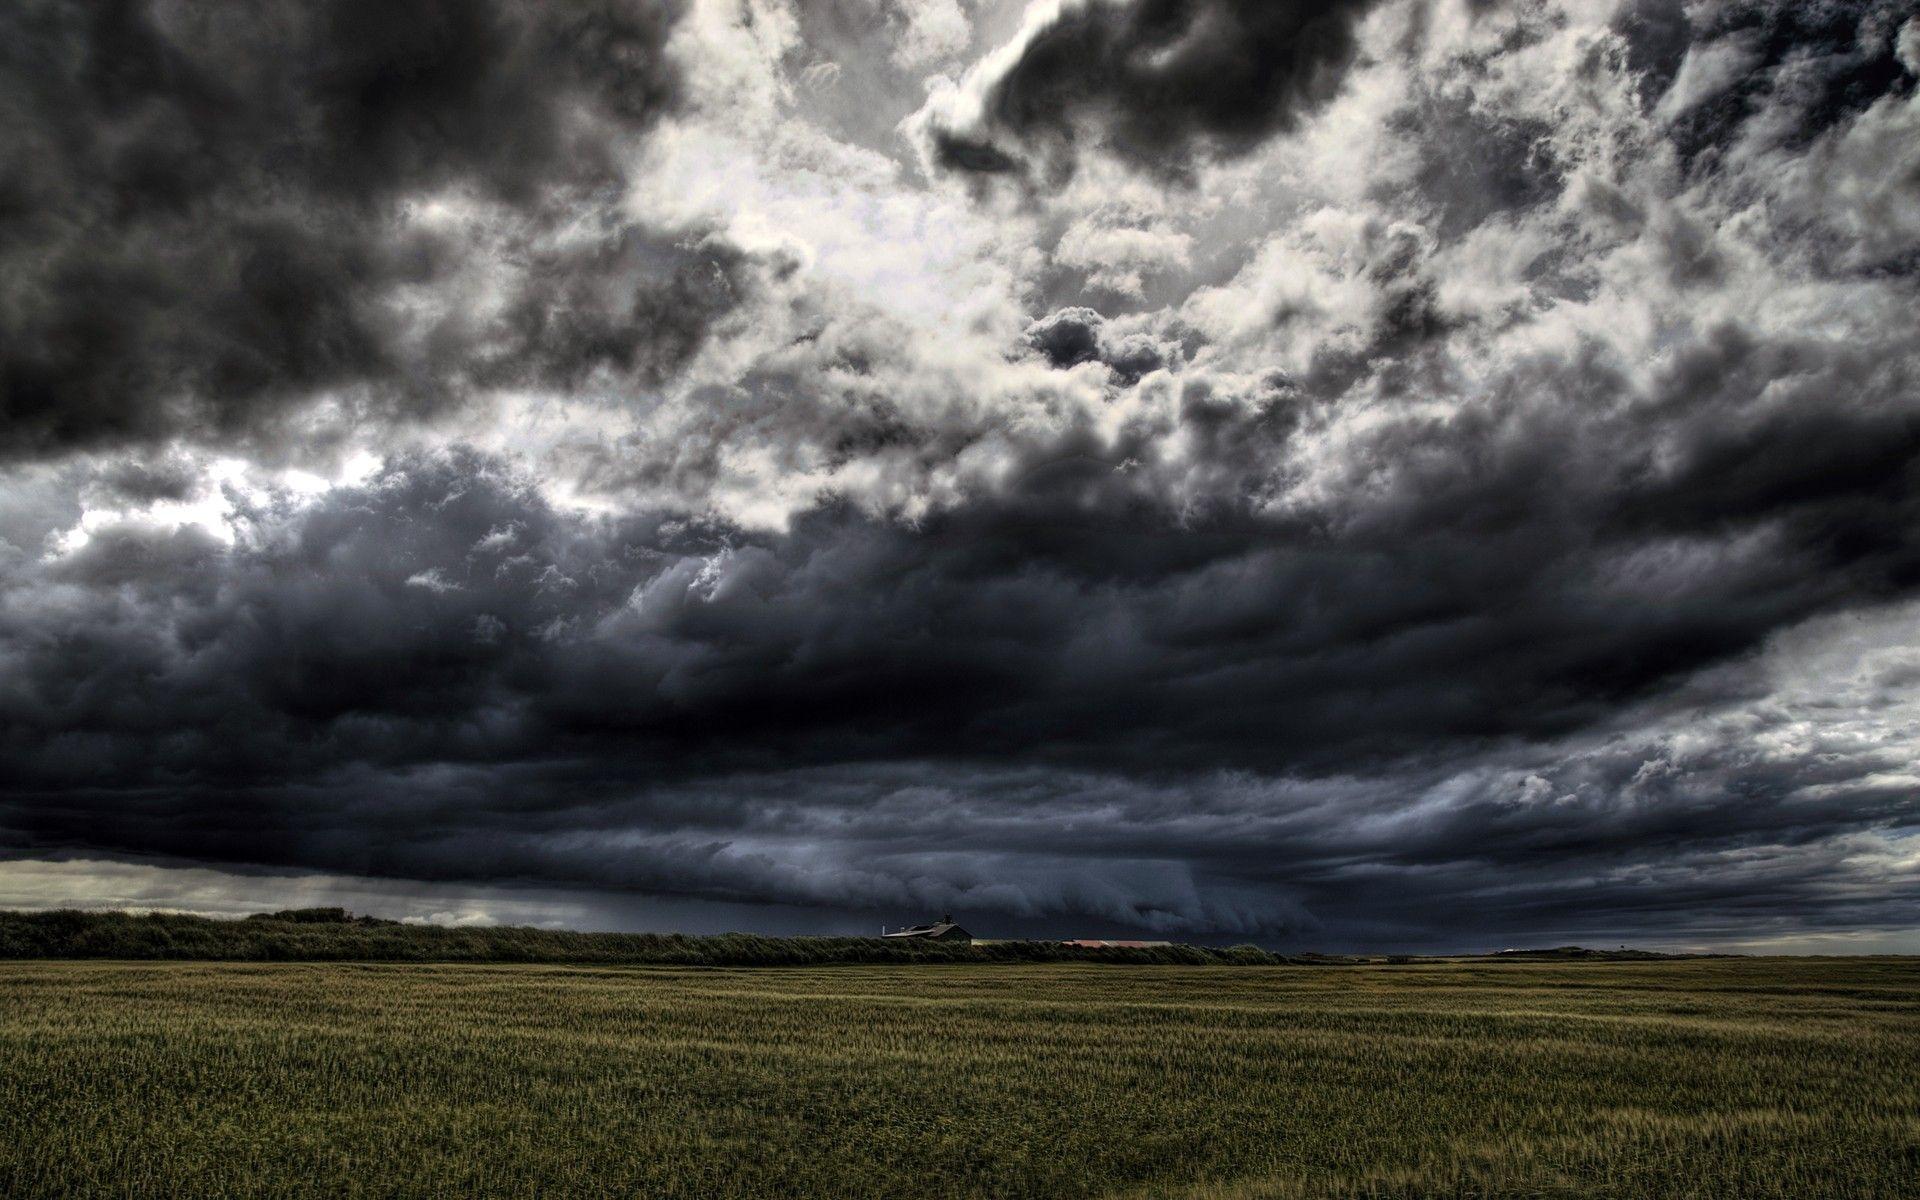 Dark Clouds Wallpaper Hd 33634 1920x1200 Px Hdwallsource Com Storm Wallpaper Storm Pictures Clouds